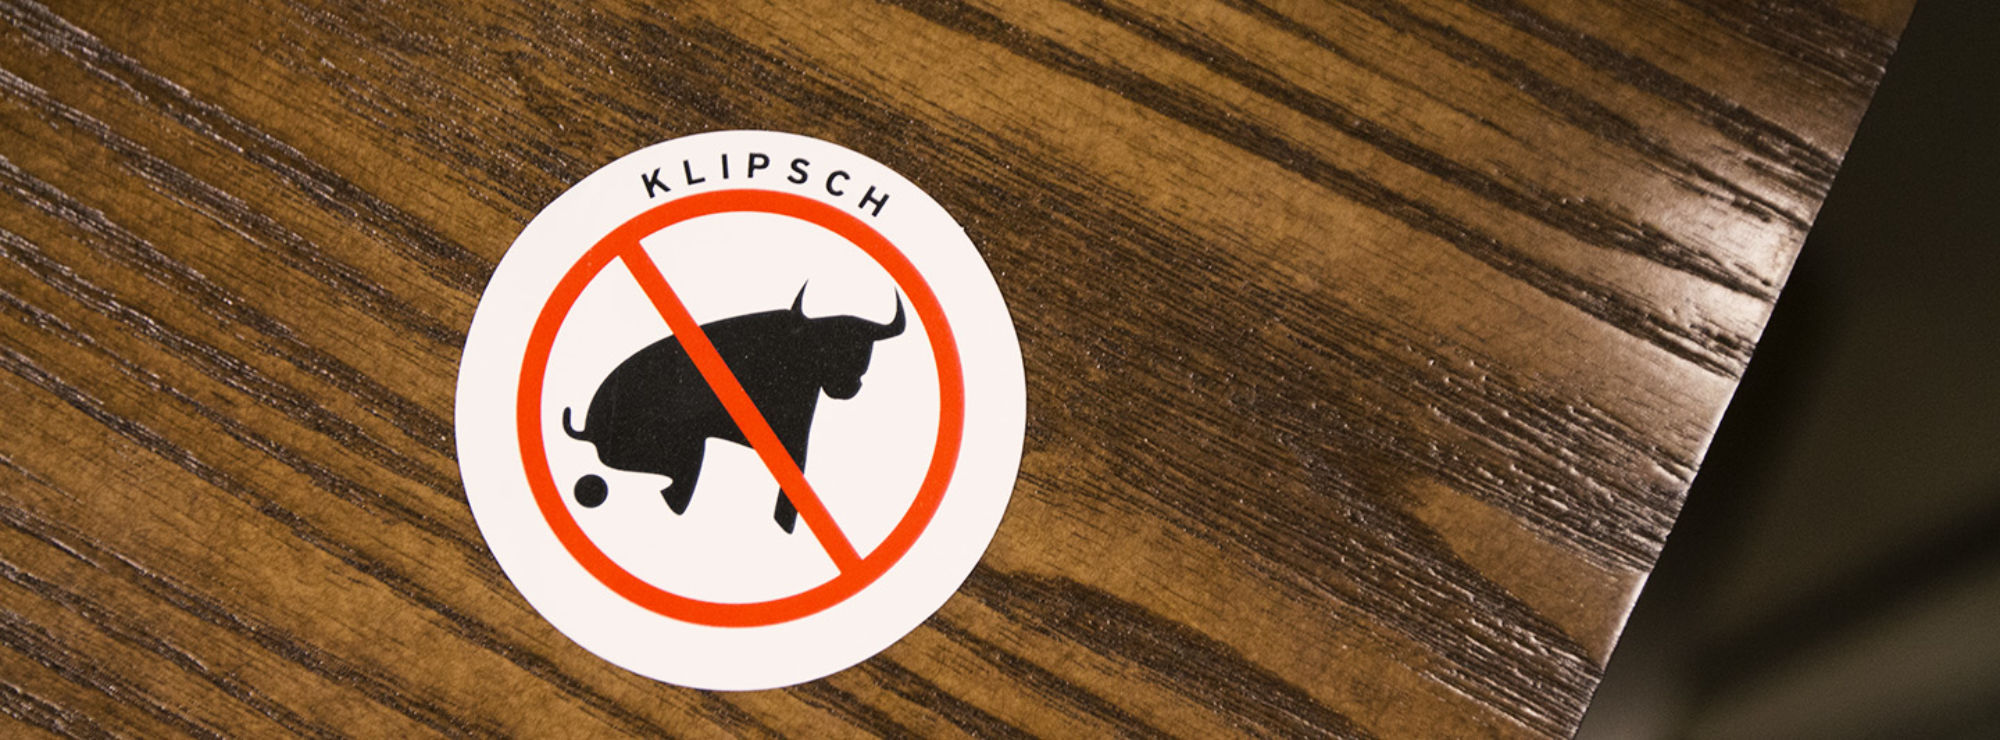 No Bullshit sticker on a wood table